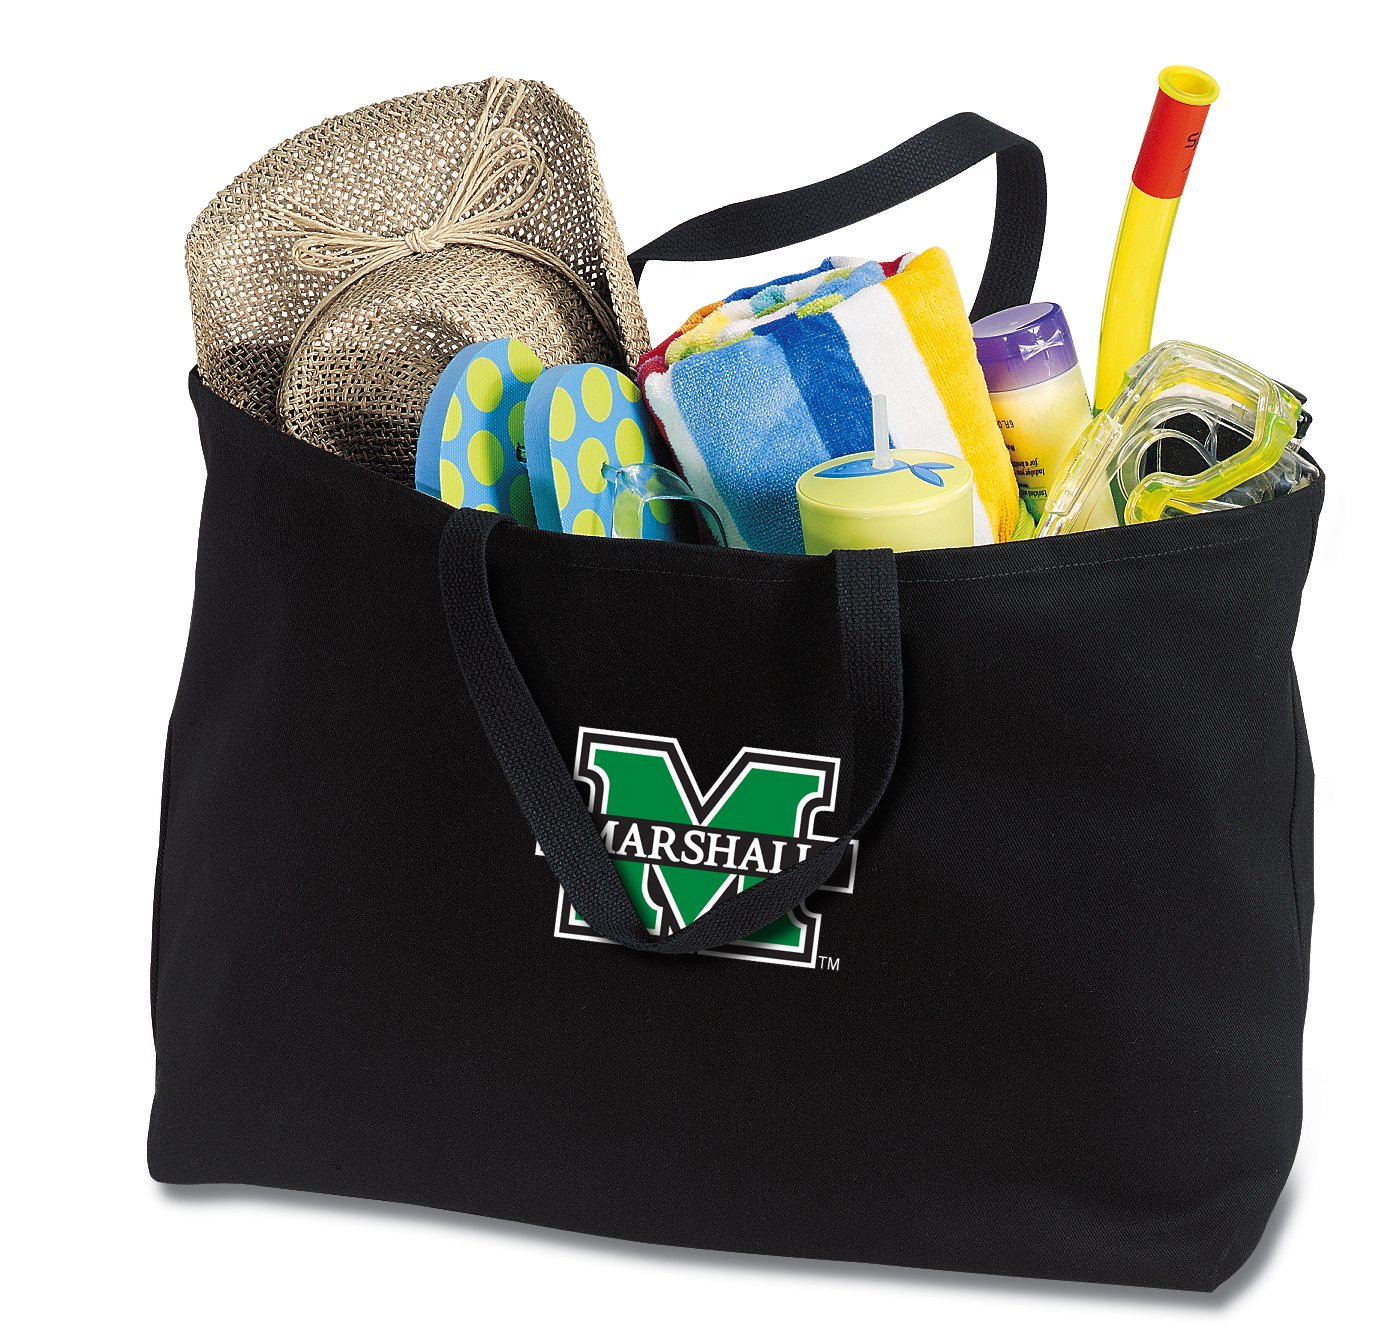 JUMBO Marshall Tote Bag or Large Canvas Marshall University Shopping Bag